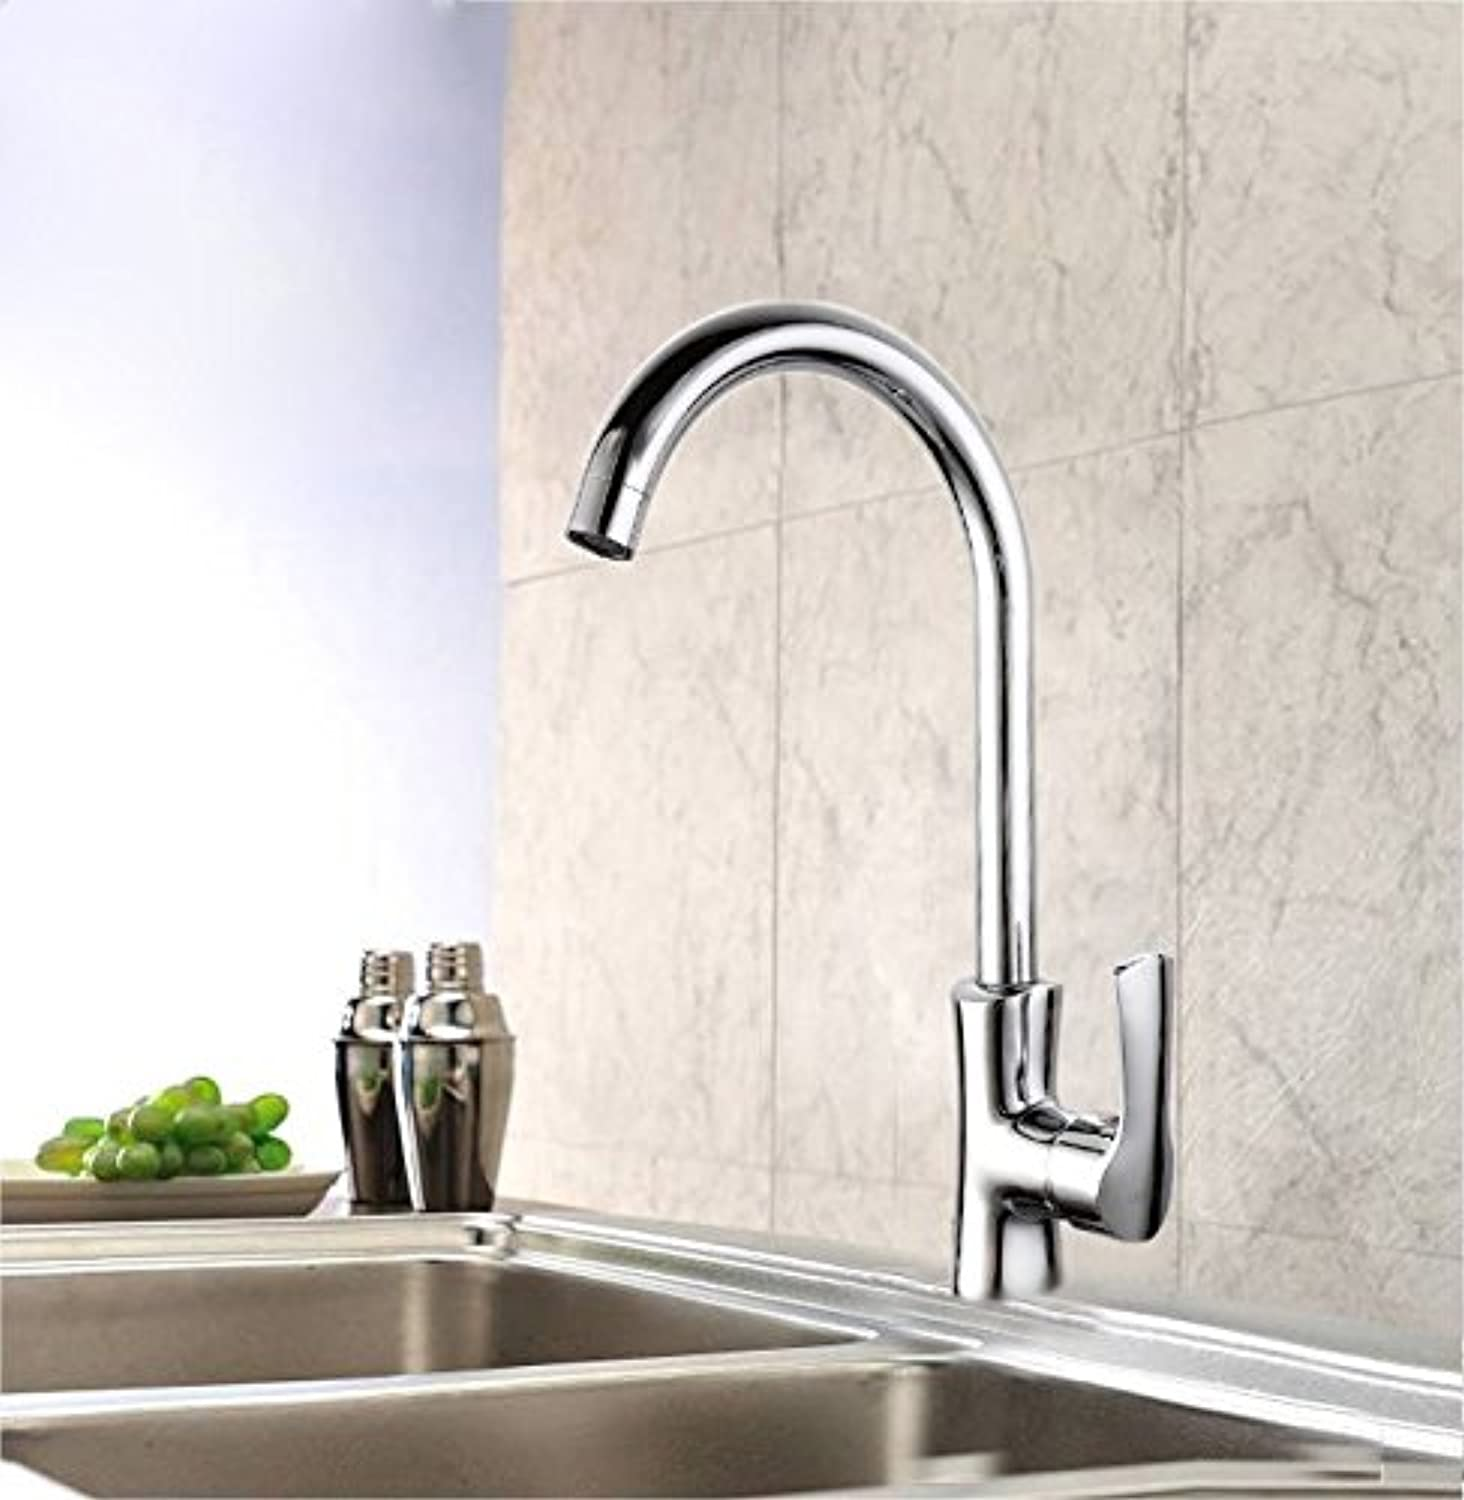 Commercial Single Lever Pull Down Kitchen Sink Faucet Brass Constructed Polished Full Copper Jade Pillow Single Handle Kitchen Faucet Sink Hot and Cold Water Mixing Basin Mixer